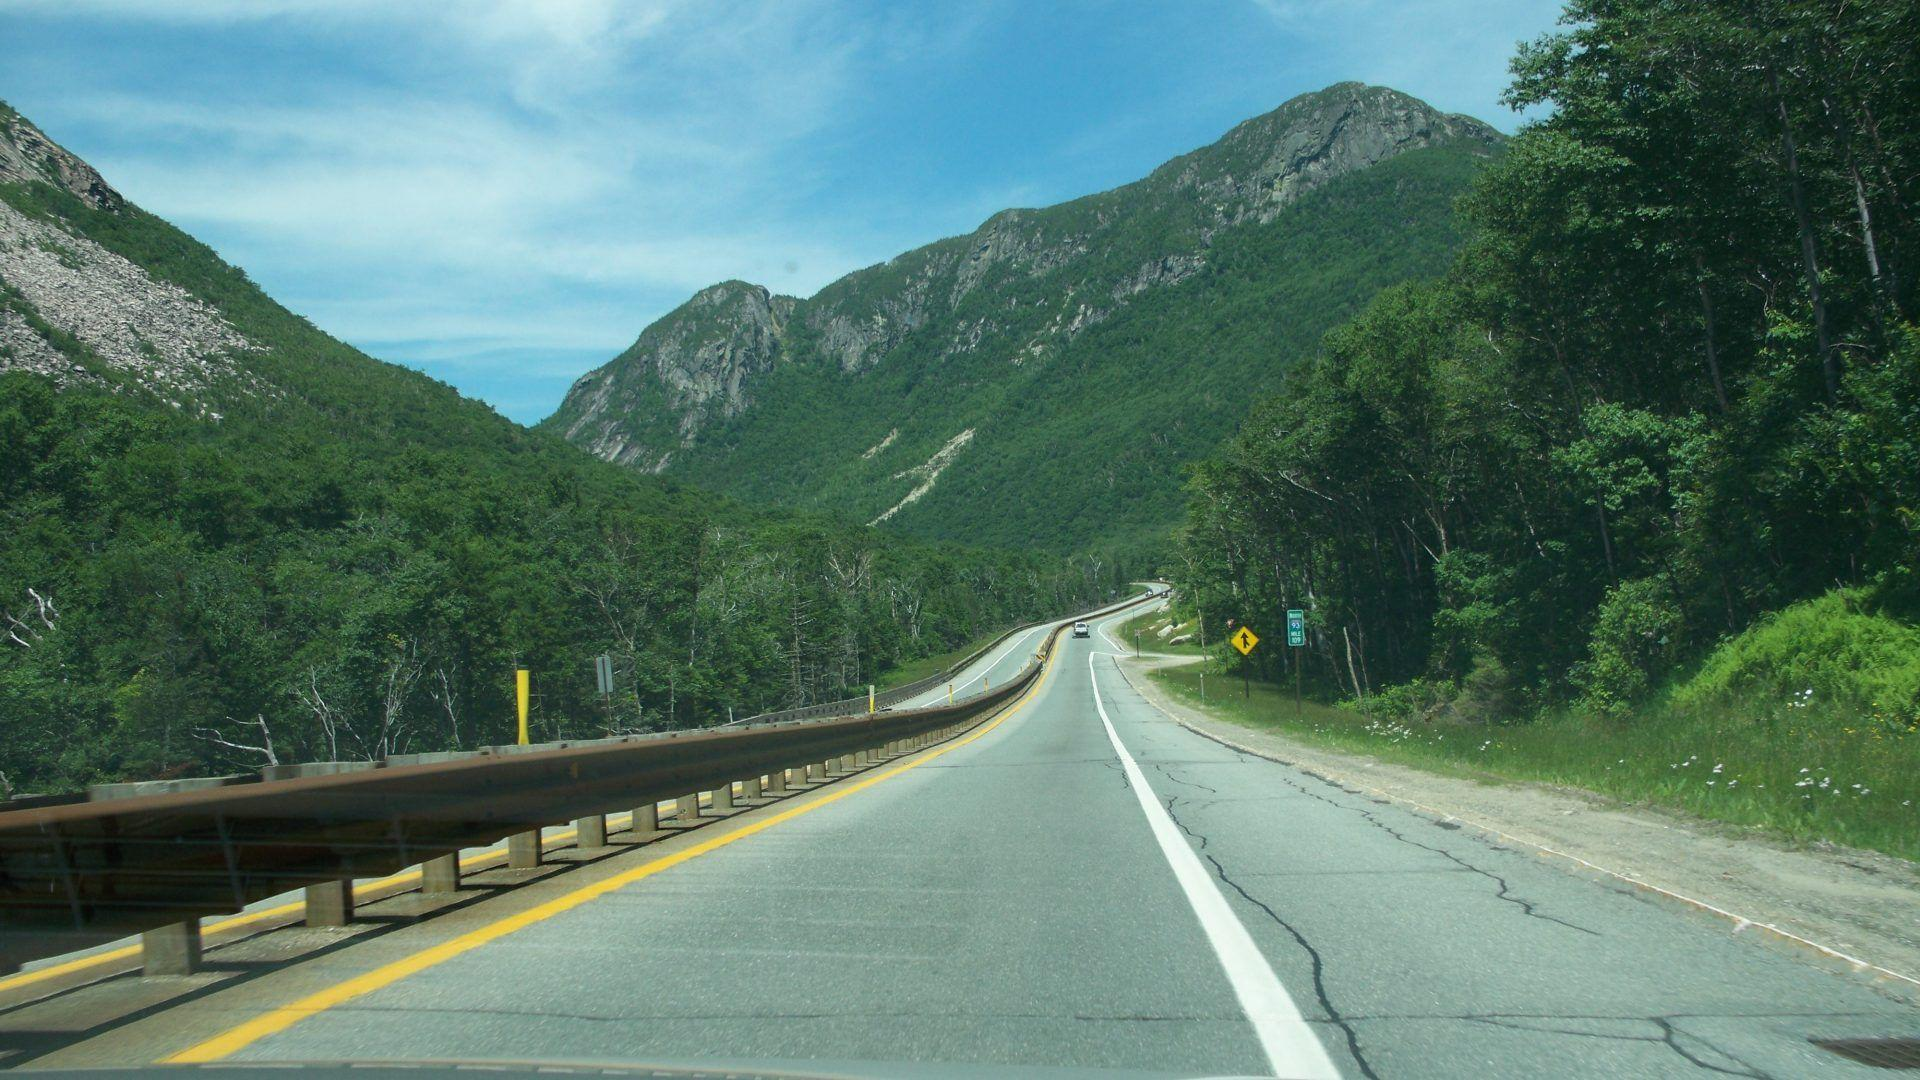 Coos Tag wallpapers: Franconia Notch Coos White Mountains New